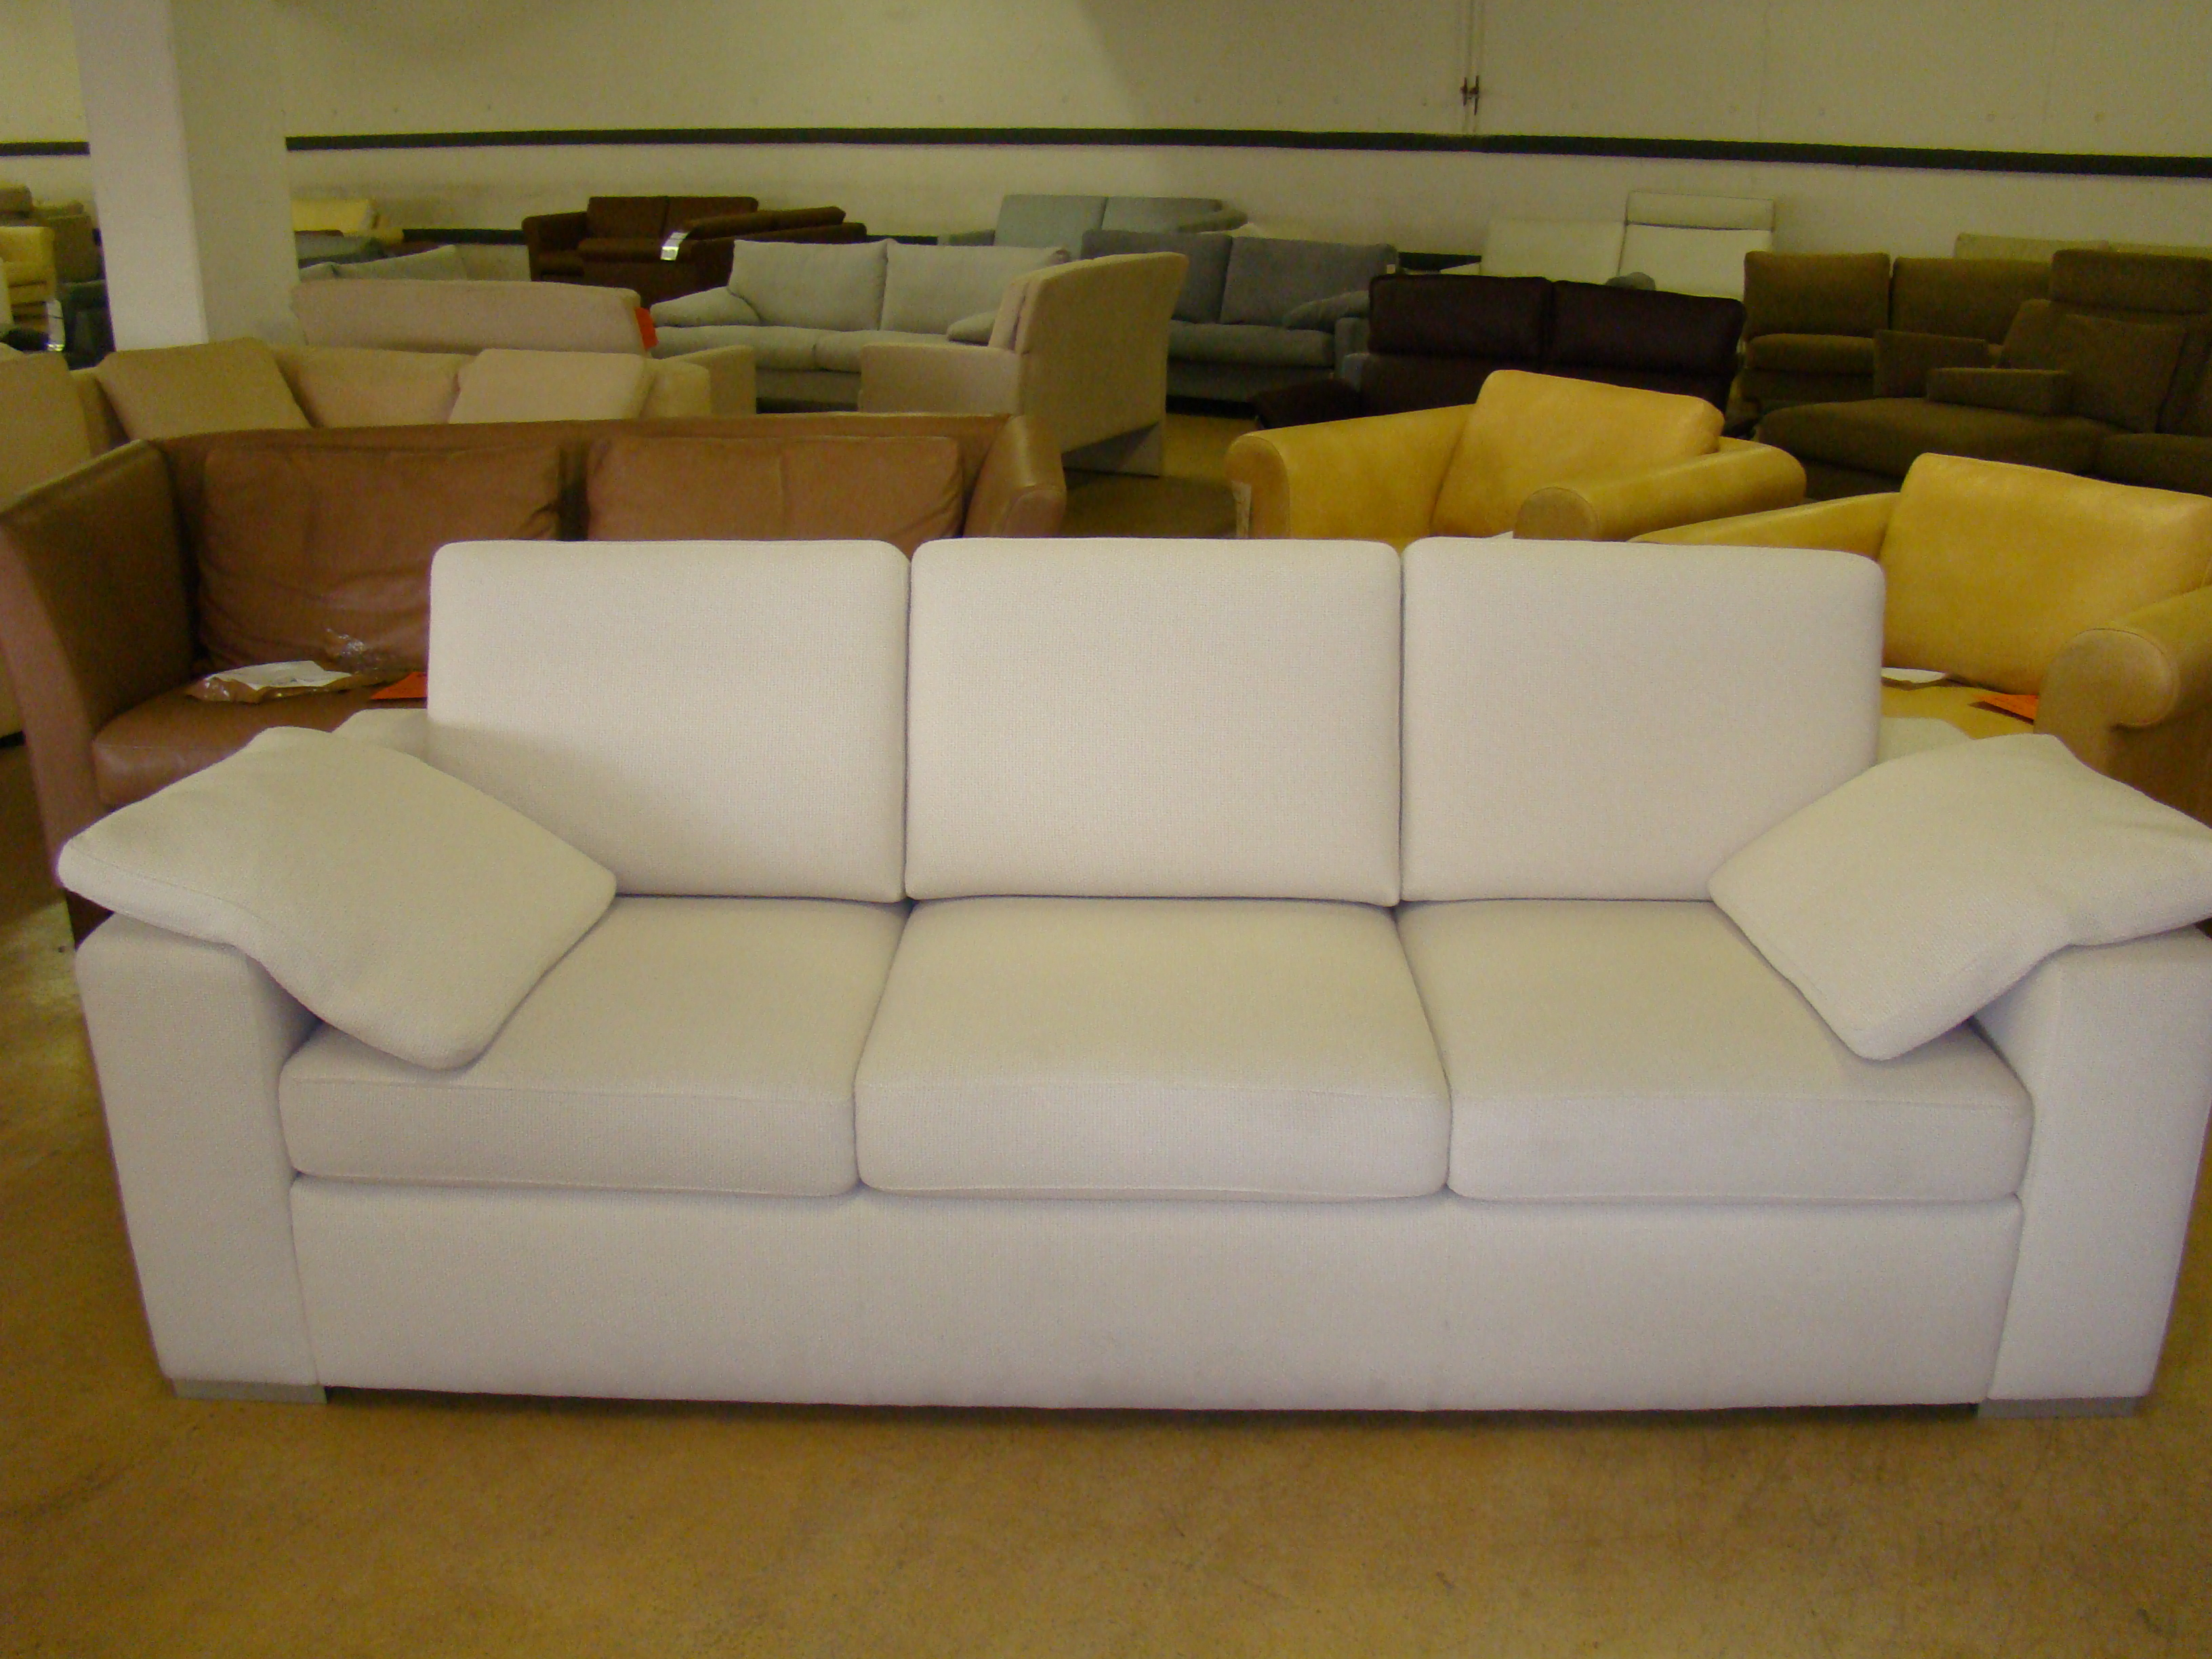 machalke sofa system plus 3 sitzer in stoff wei ausstellungsst ck ebay. Black Bedroom Furniture Sets. Home Design Ideas